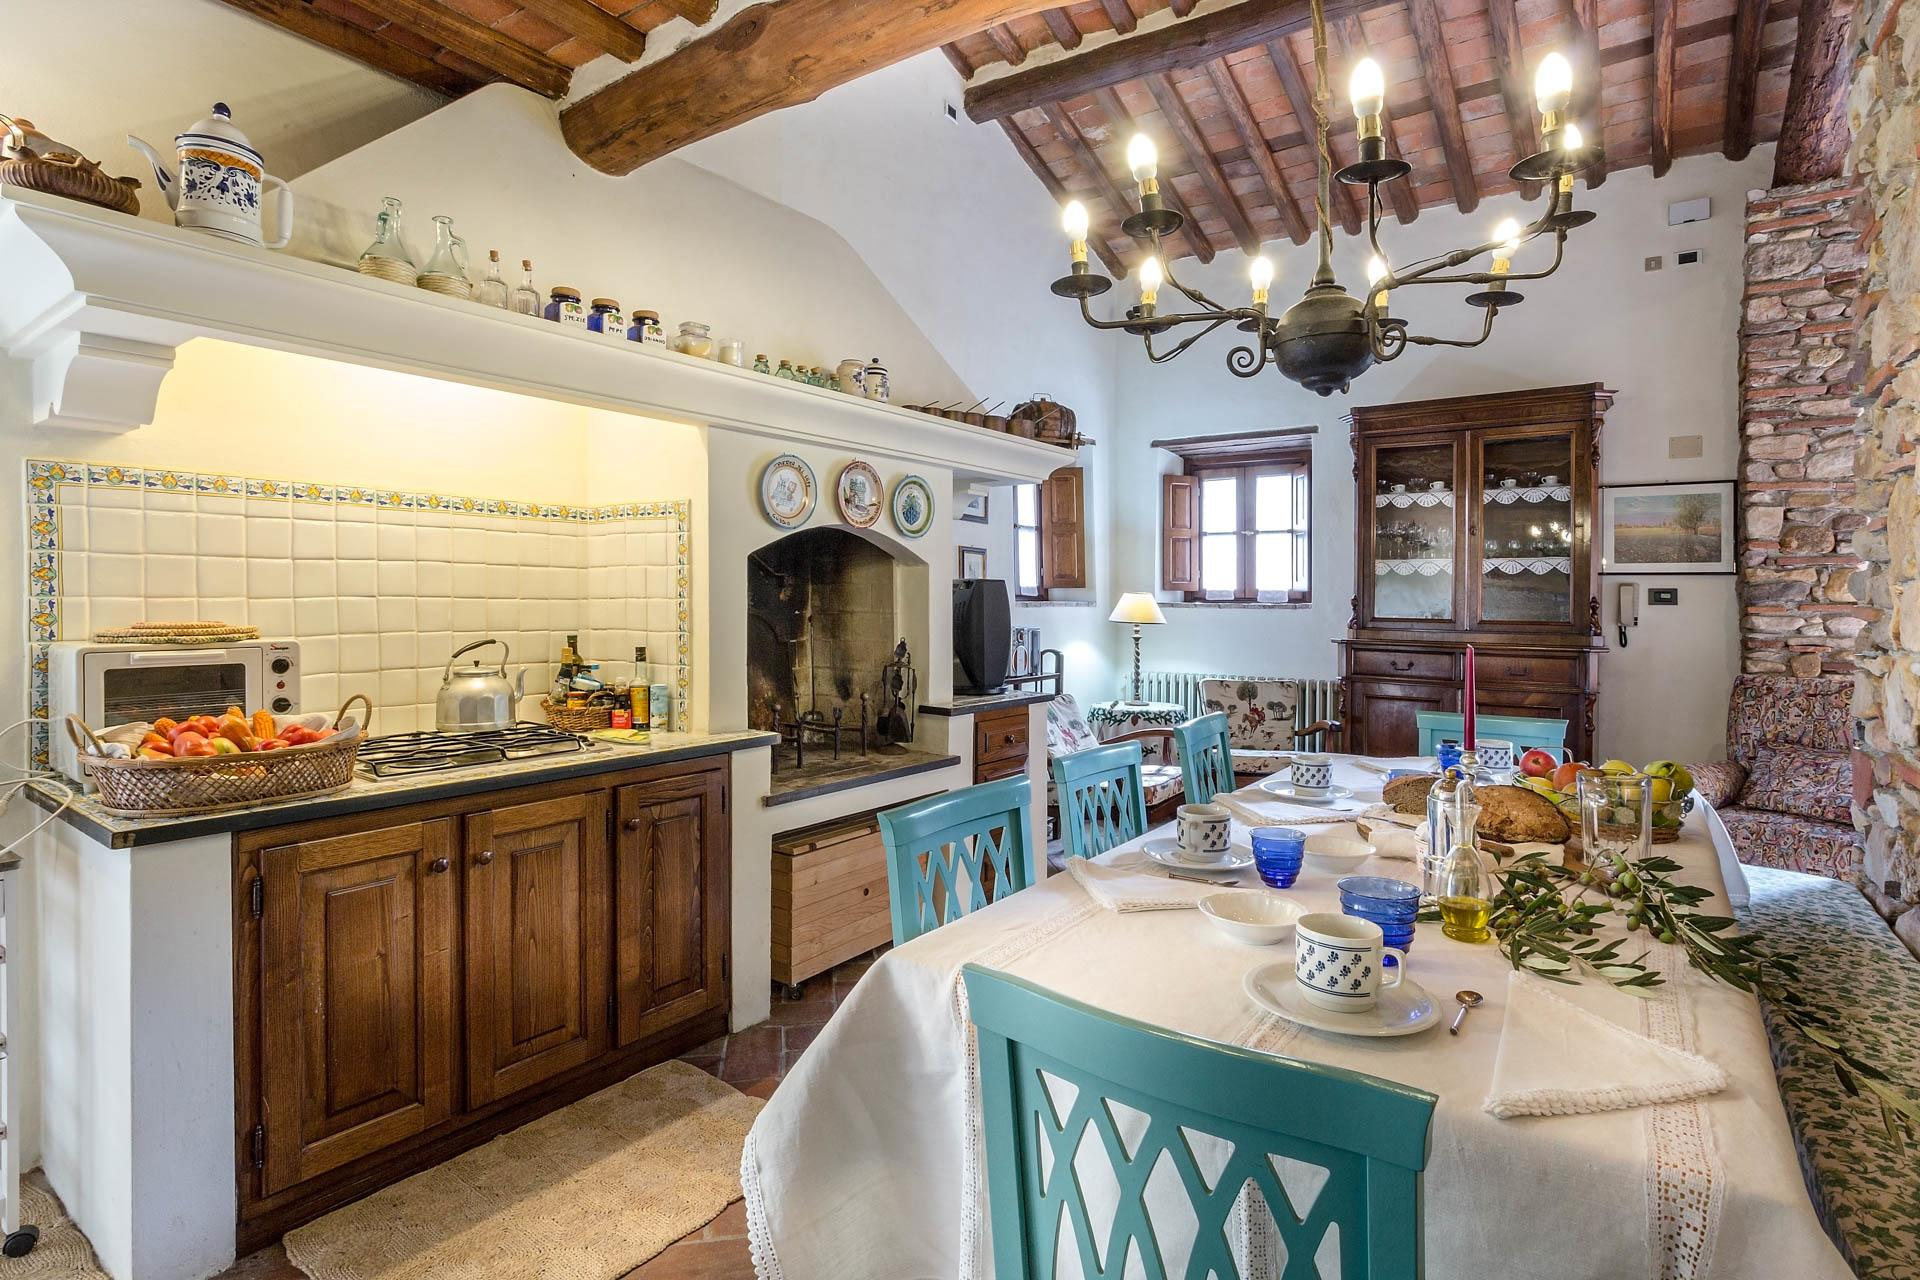 Kitchen and dining table, Casa Agrume, Tuscany, Lucca.